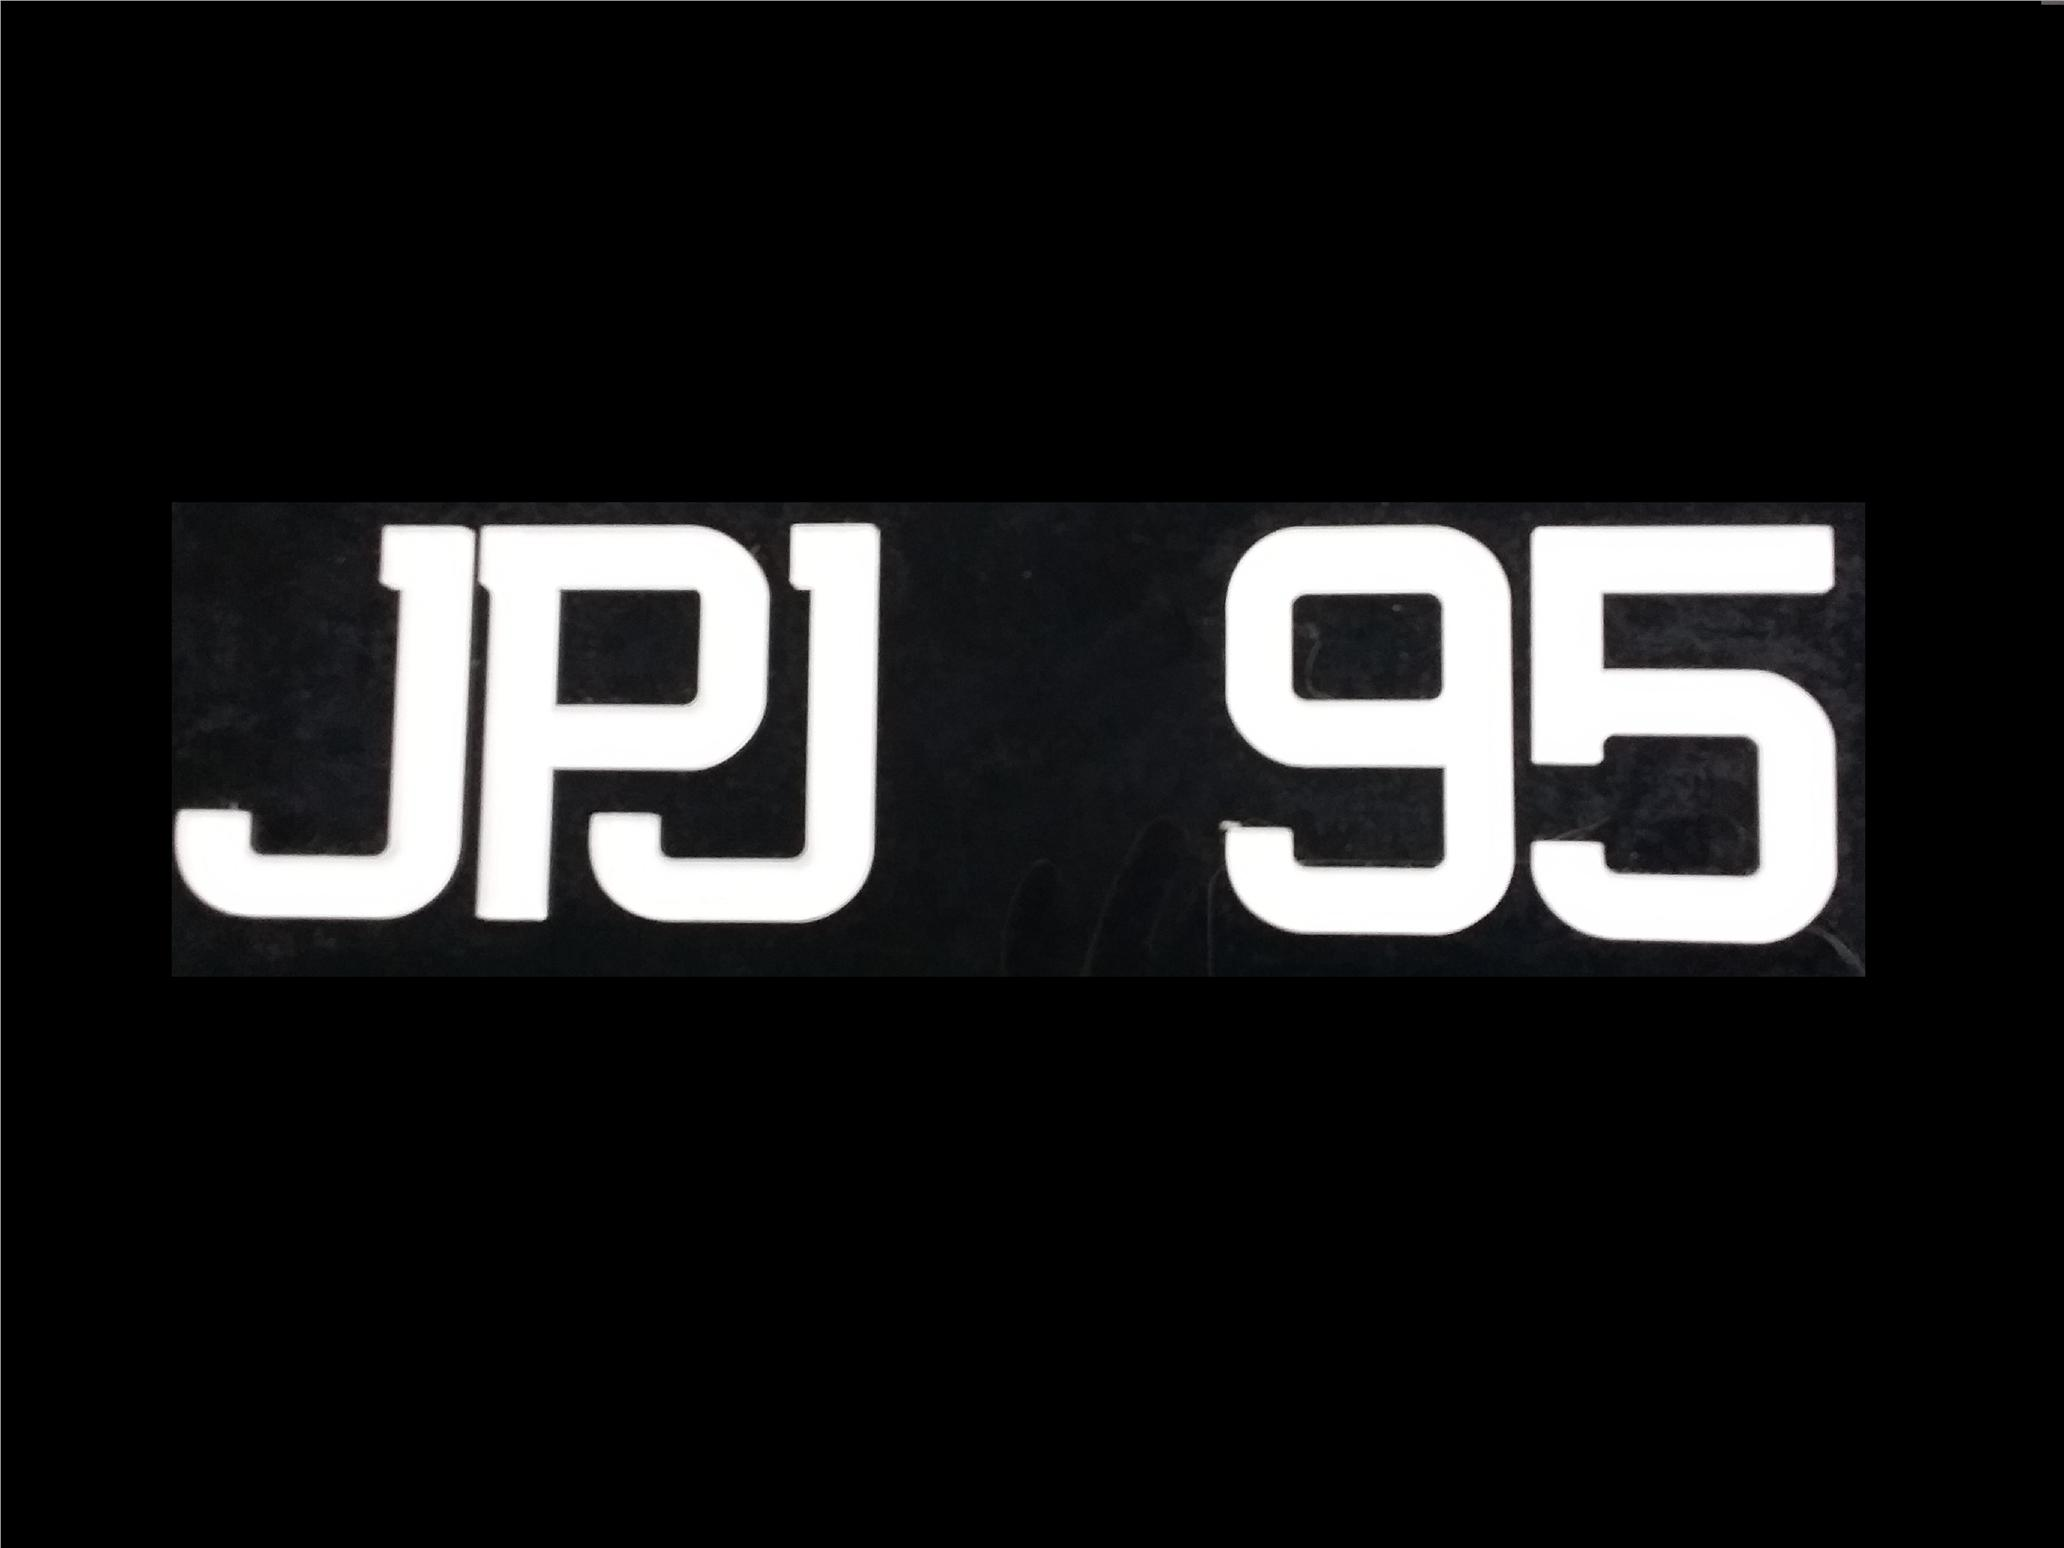 JPJ FONT CRYSTAL ACRYLIC CAR NUMBER PLATE SET 2 - 7 ALPHABET